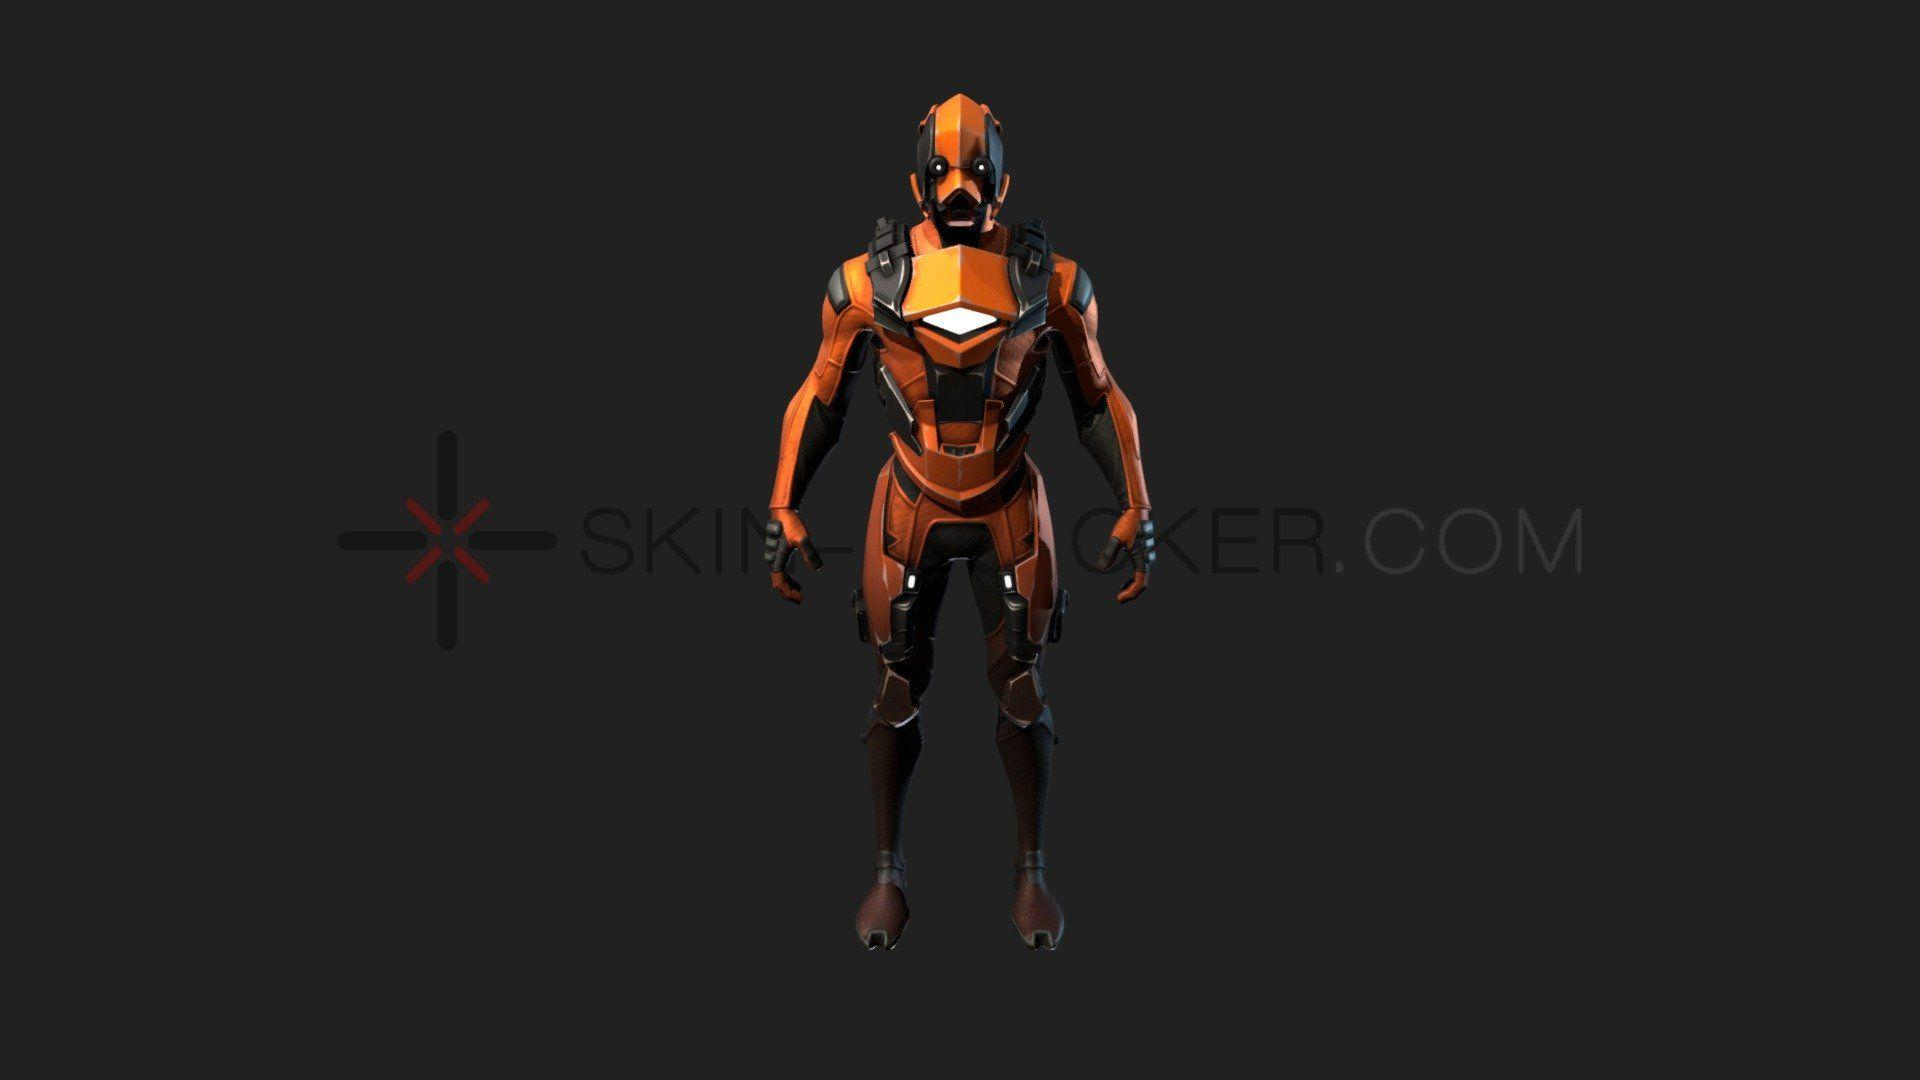 Fortnite - Vertex - 3D model by Skin-Tracker (@stairwave) - Sketchfab